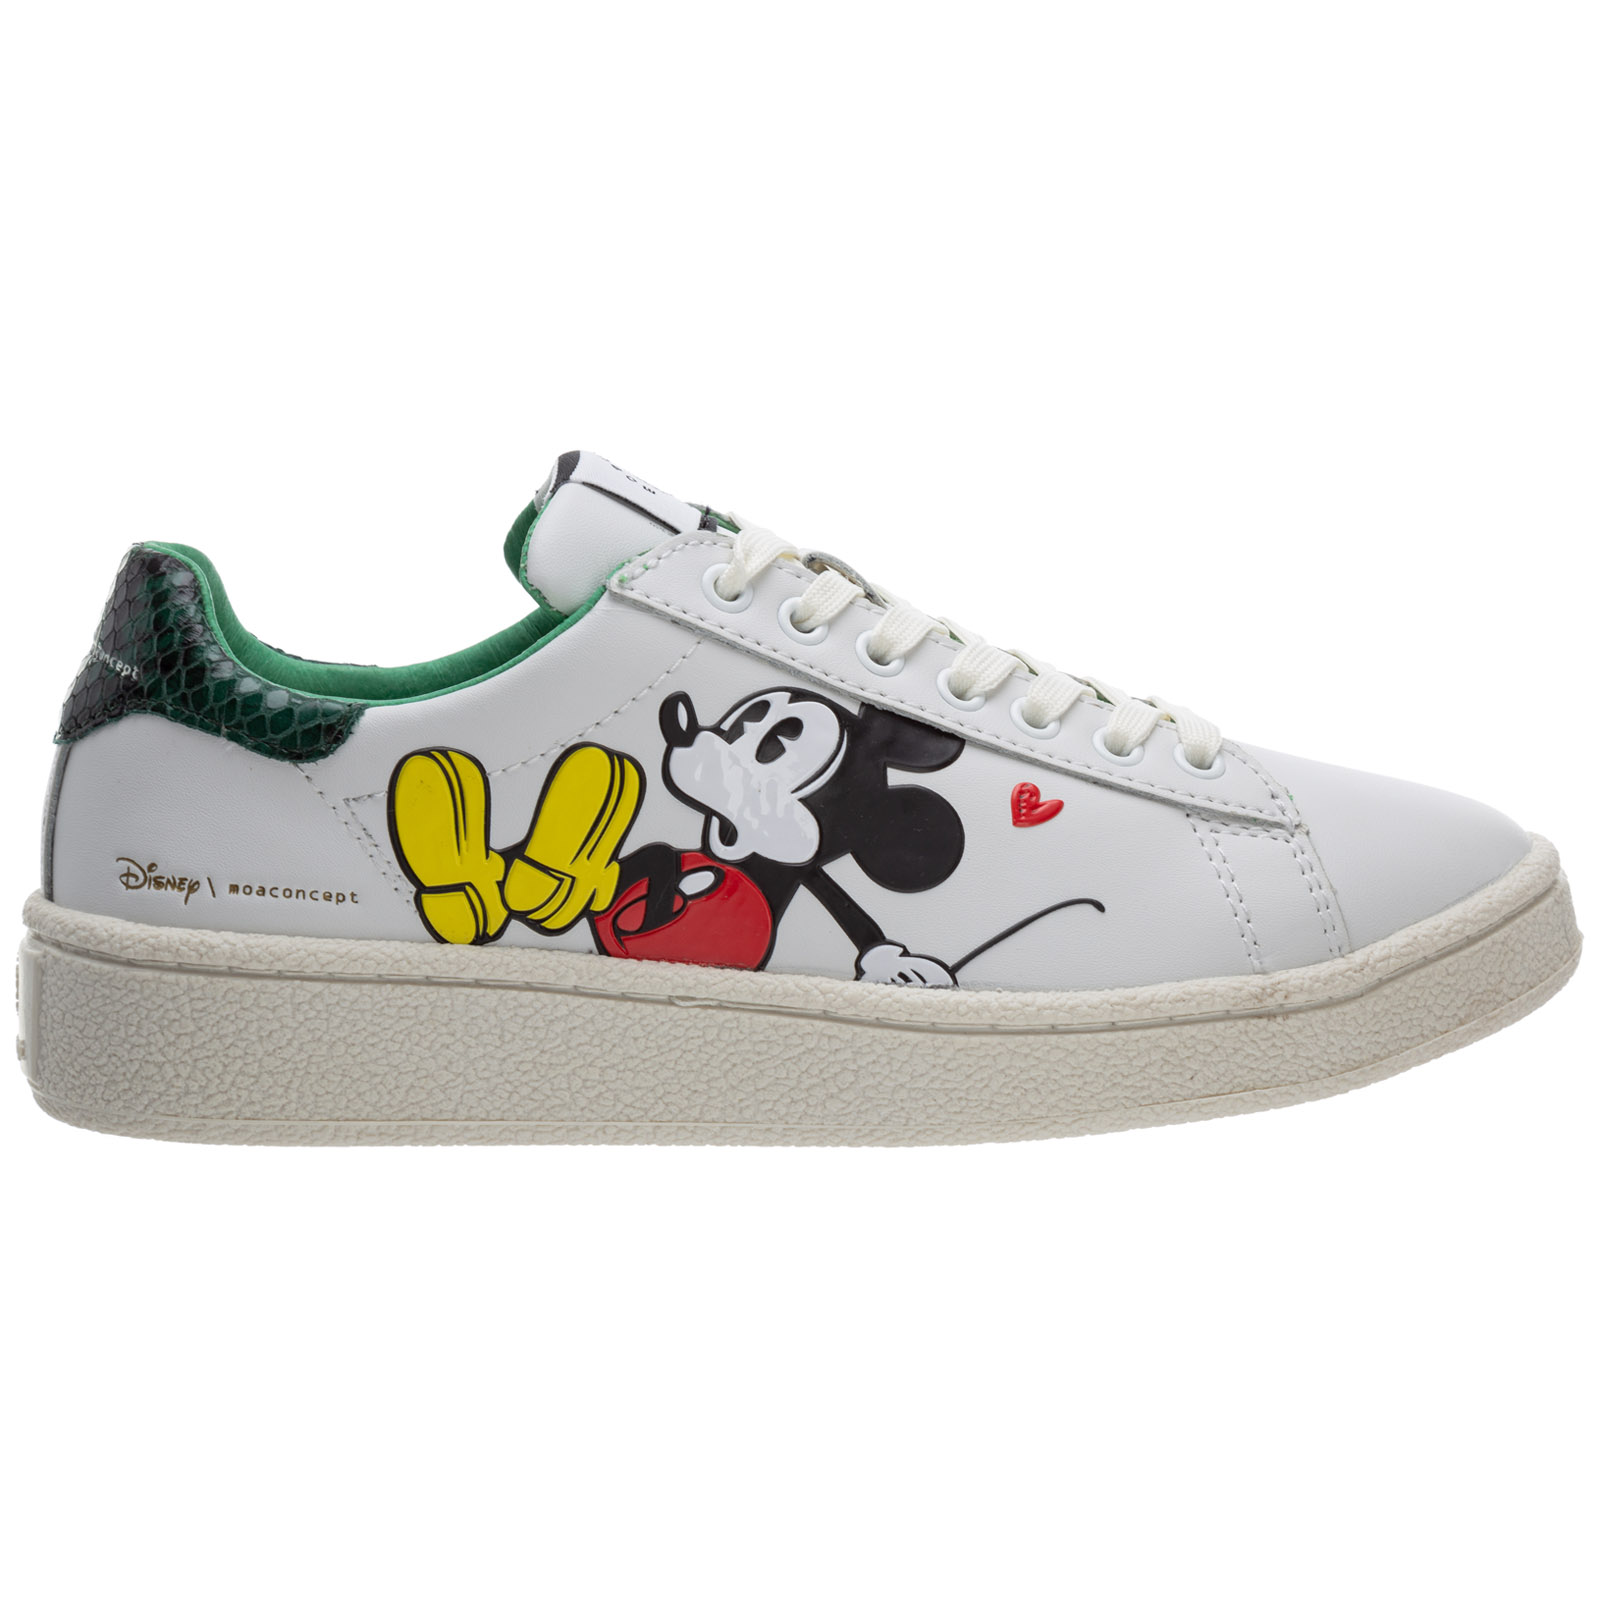 Moa Master Of Arts Leathers WOMEN'S SHOES LEATHER TRAINERS SNEAKERS GRAND MASTER